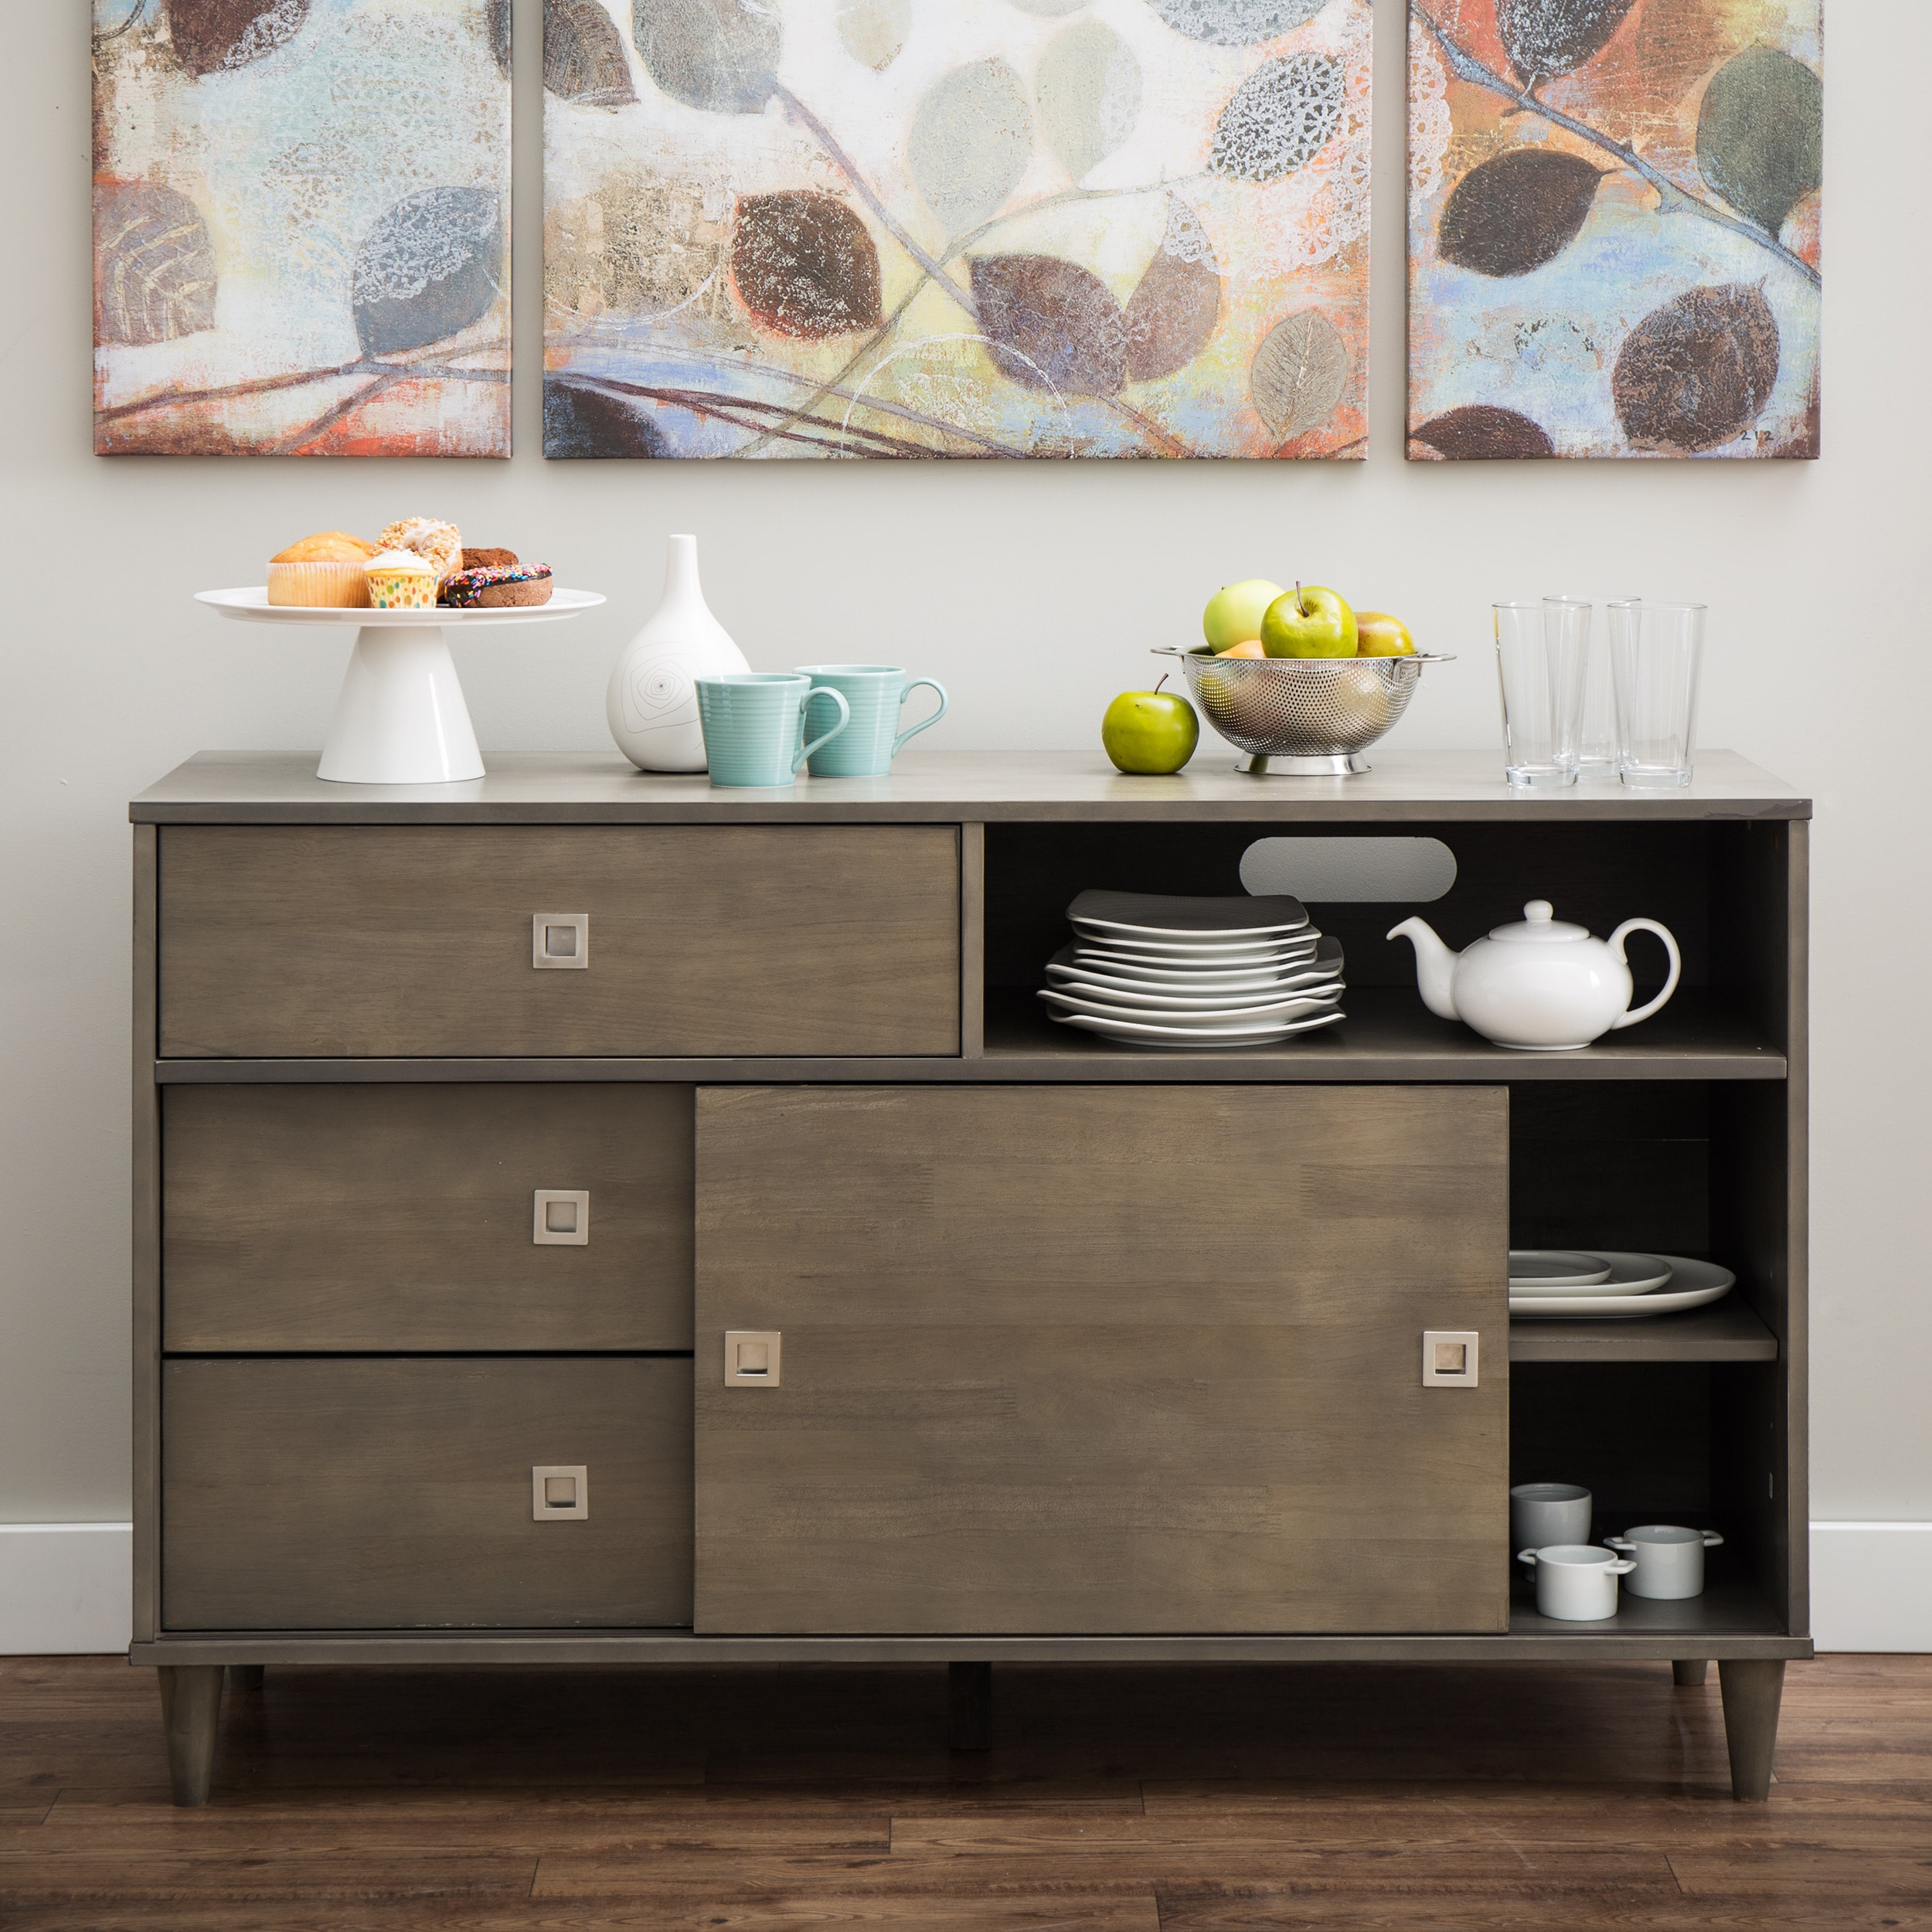 Marley Light Charcoal Transitional Buffet Overstock